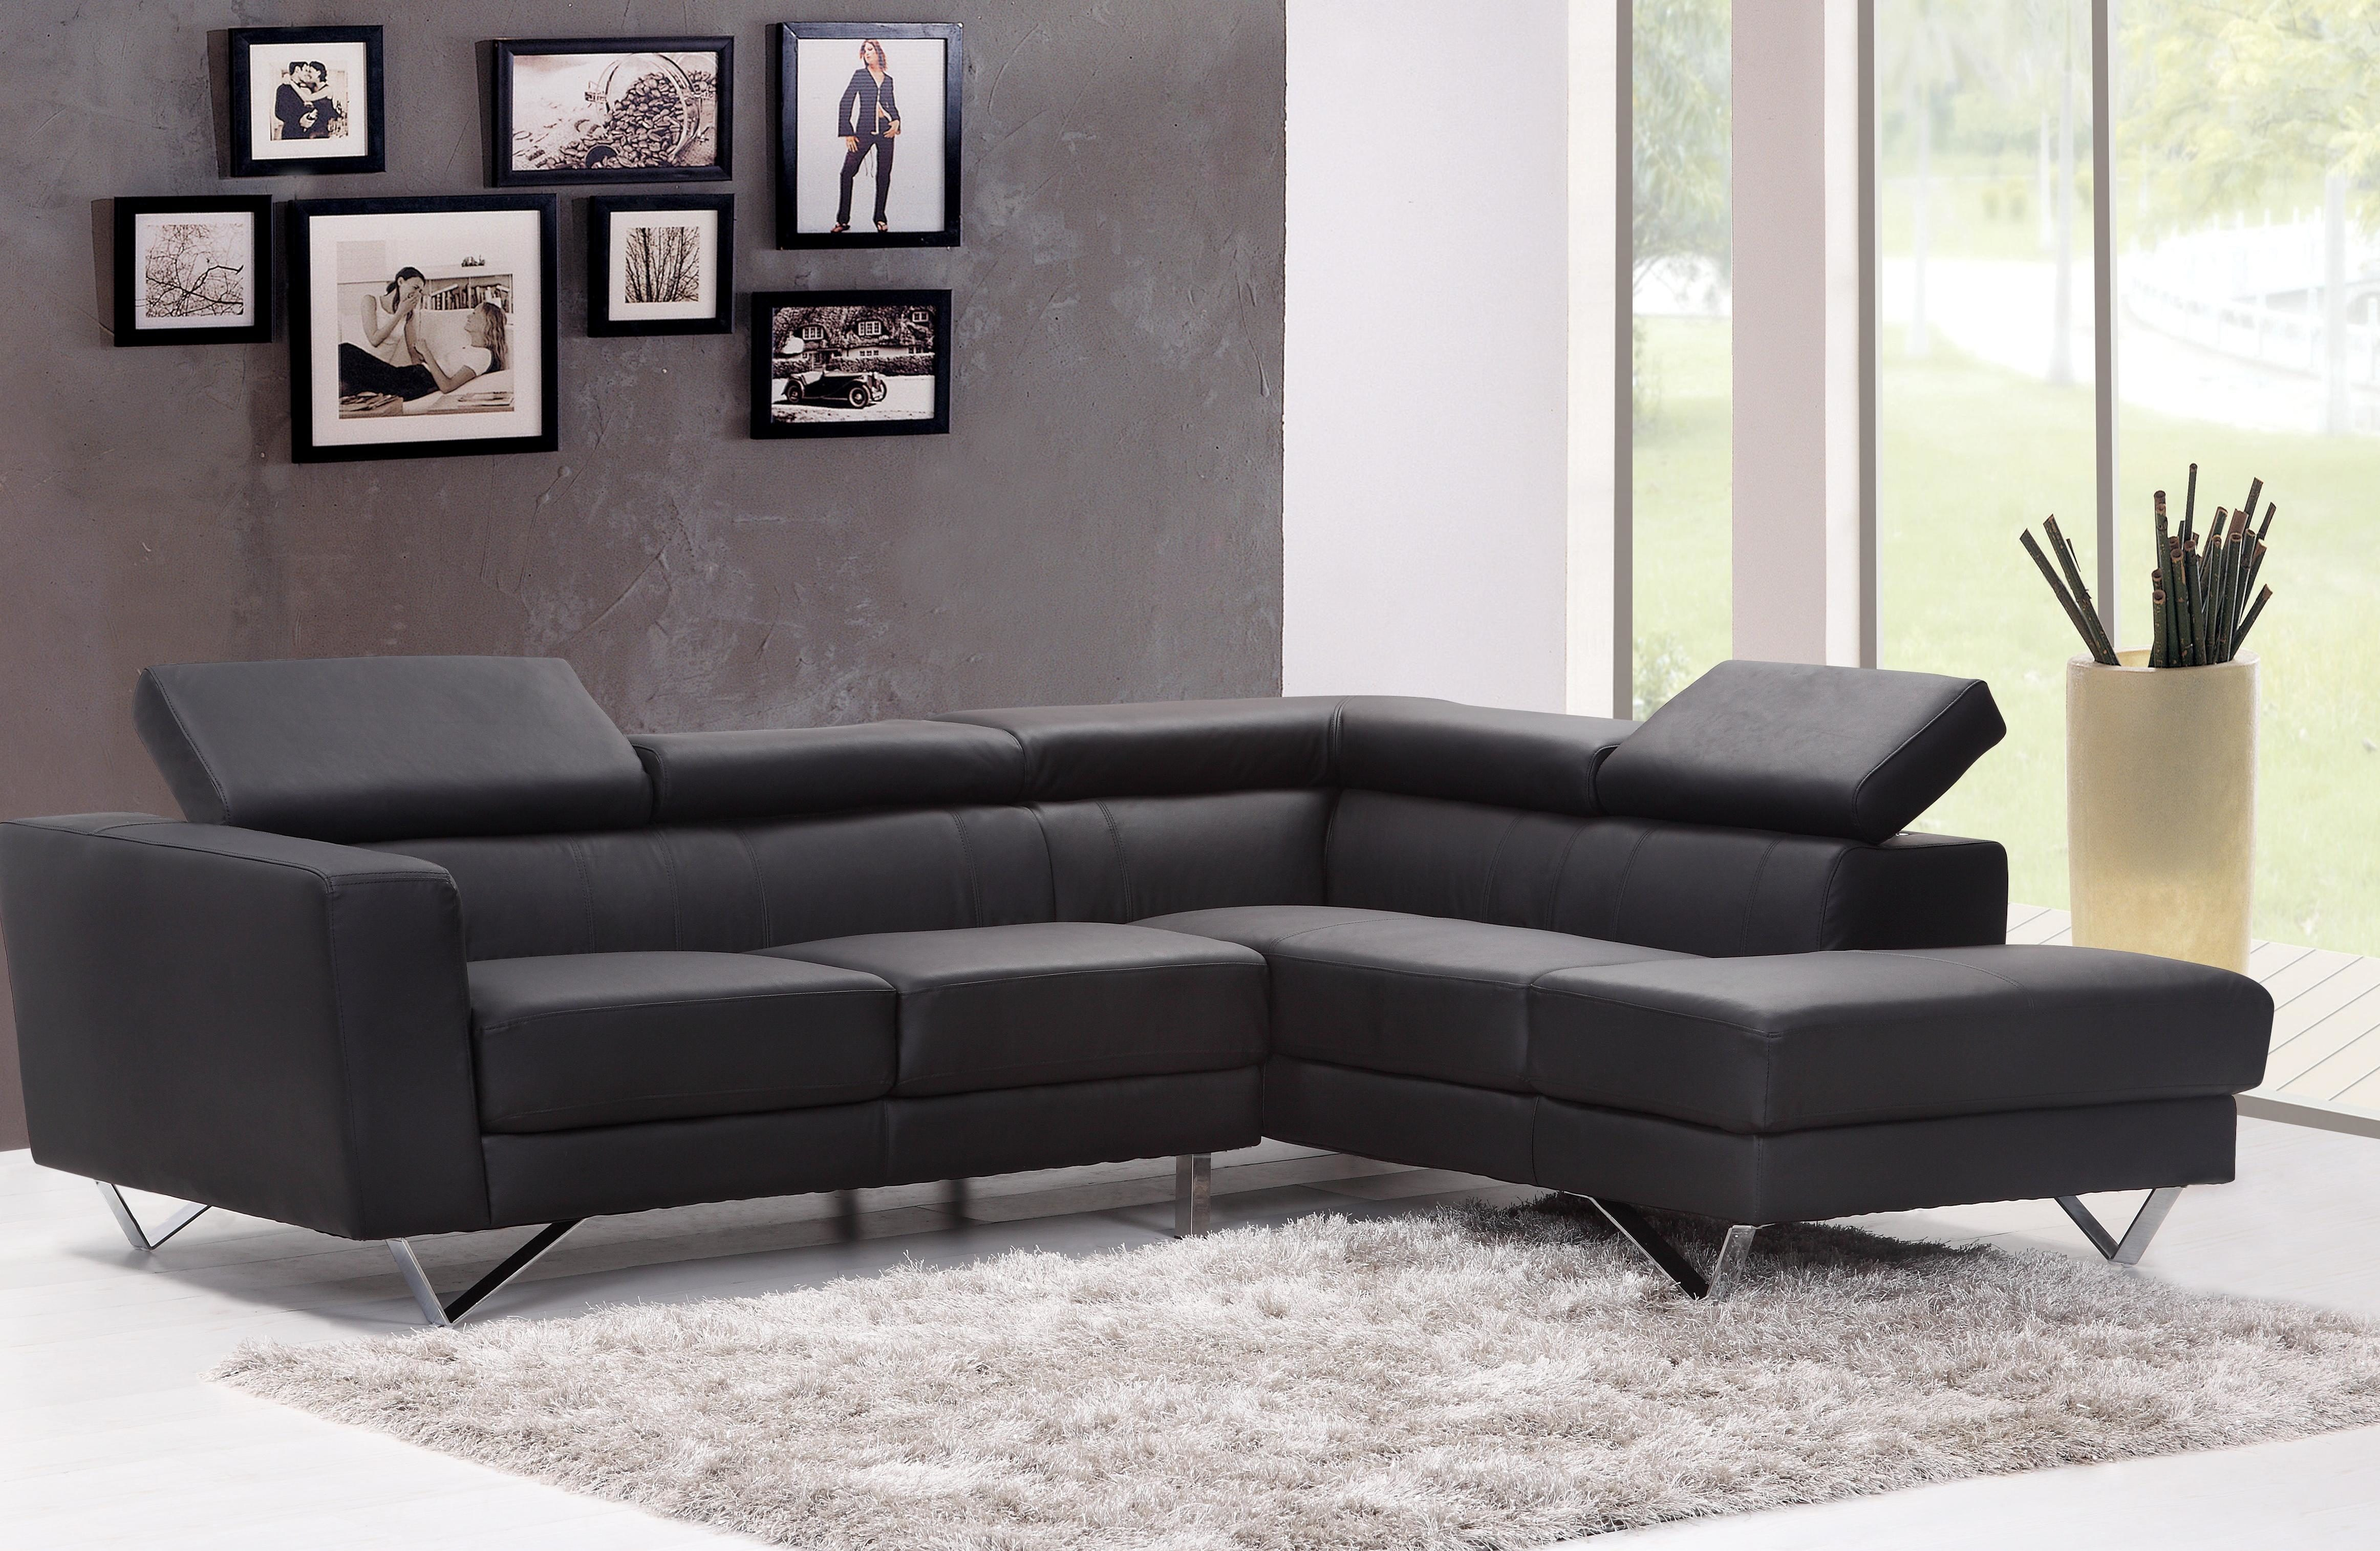 Free picture sofa furniture room indoors chair decor contemporary cushion - Decoration furniture ...